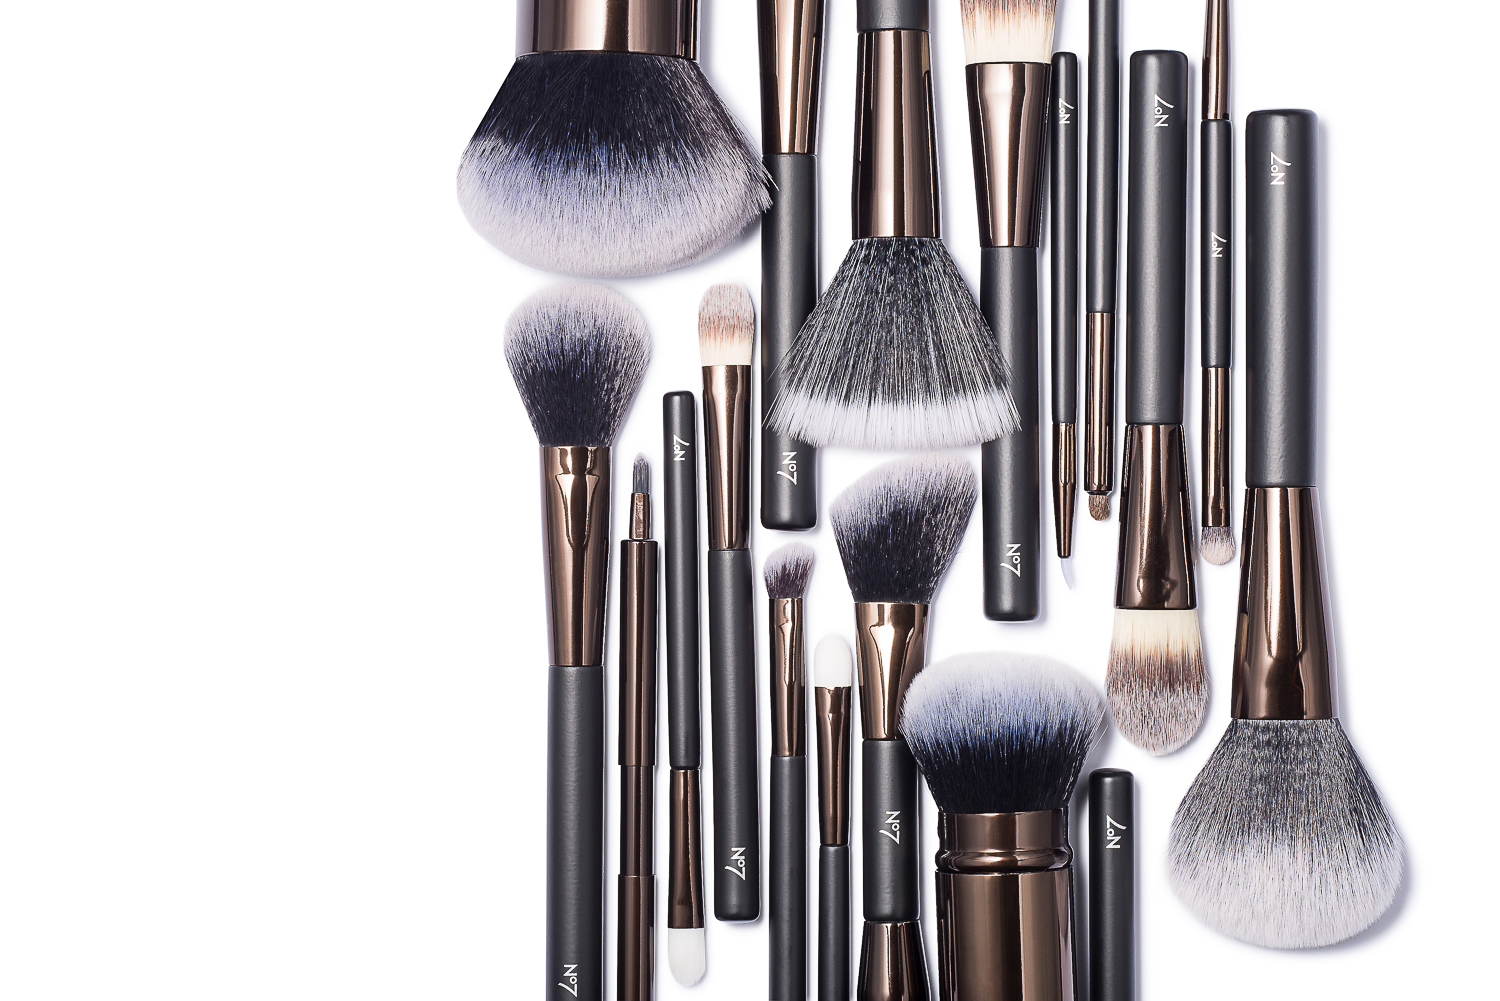 Isometric flat lay image of No7 make up brushes